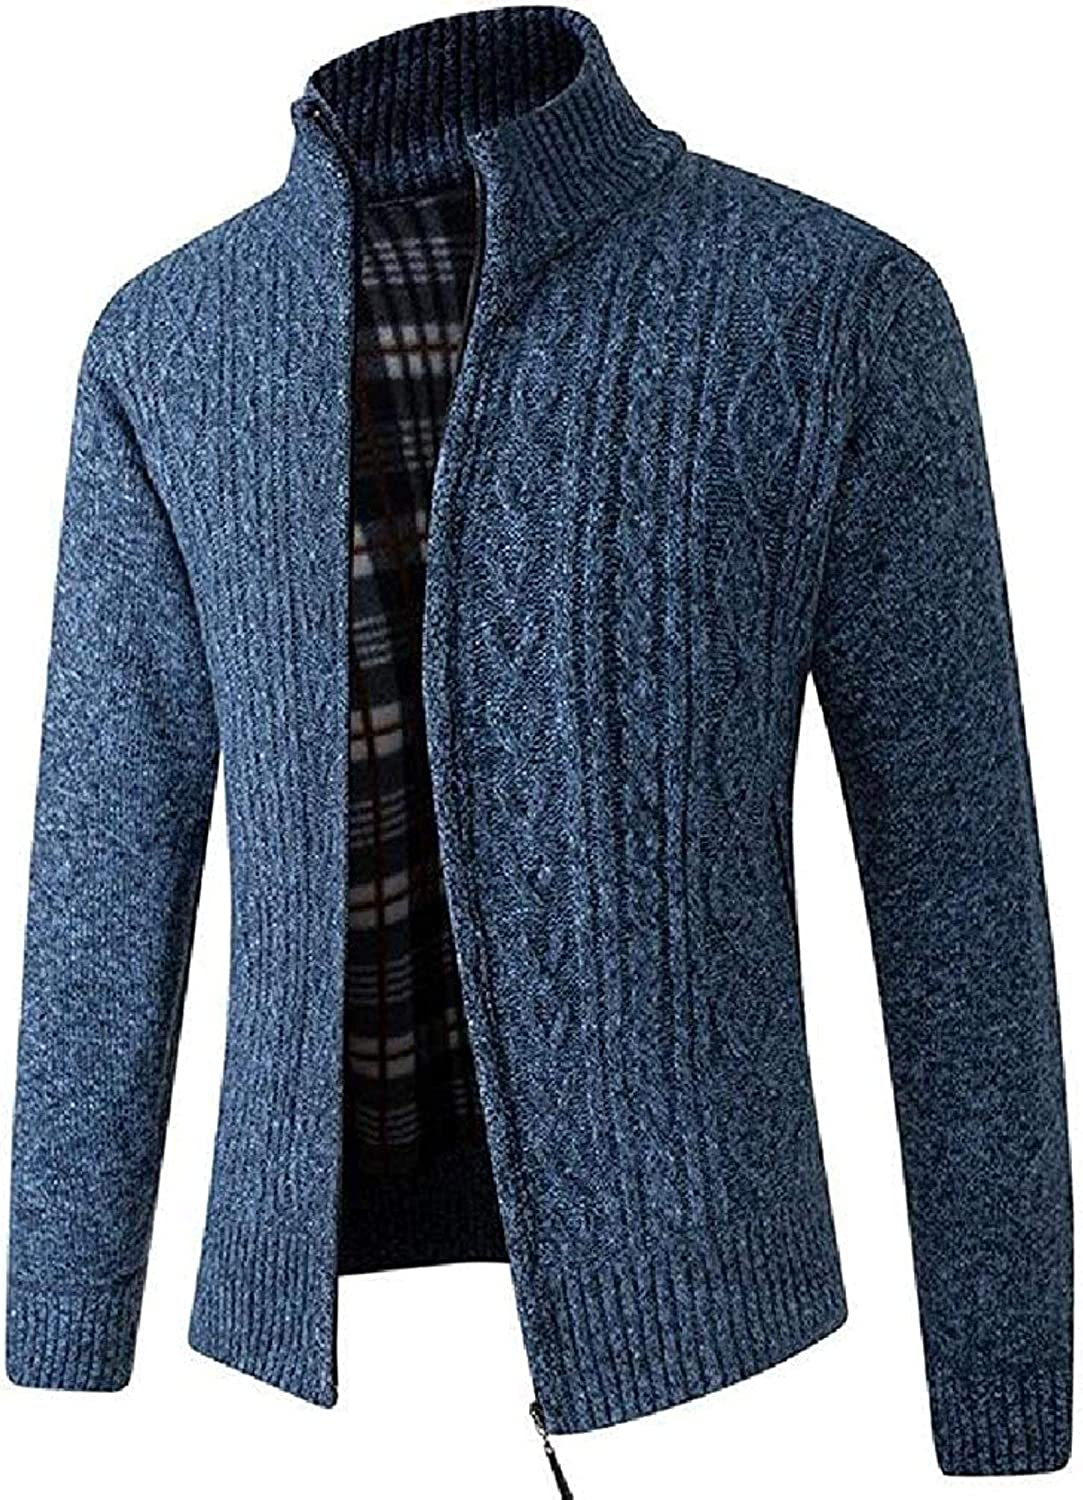 Hoolep Mens Slim Fit Thick Zip Up Solid Color Stand Collar Knit Cardigan Sweater